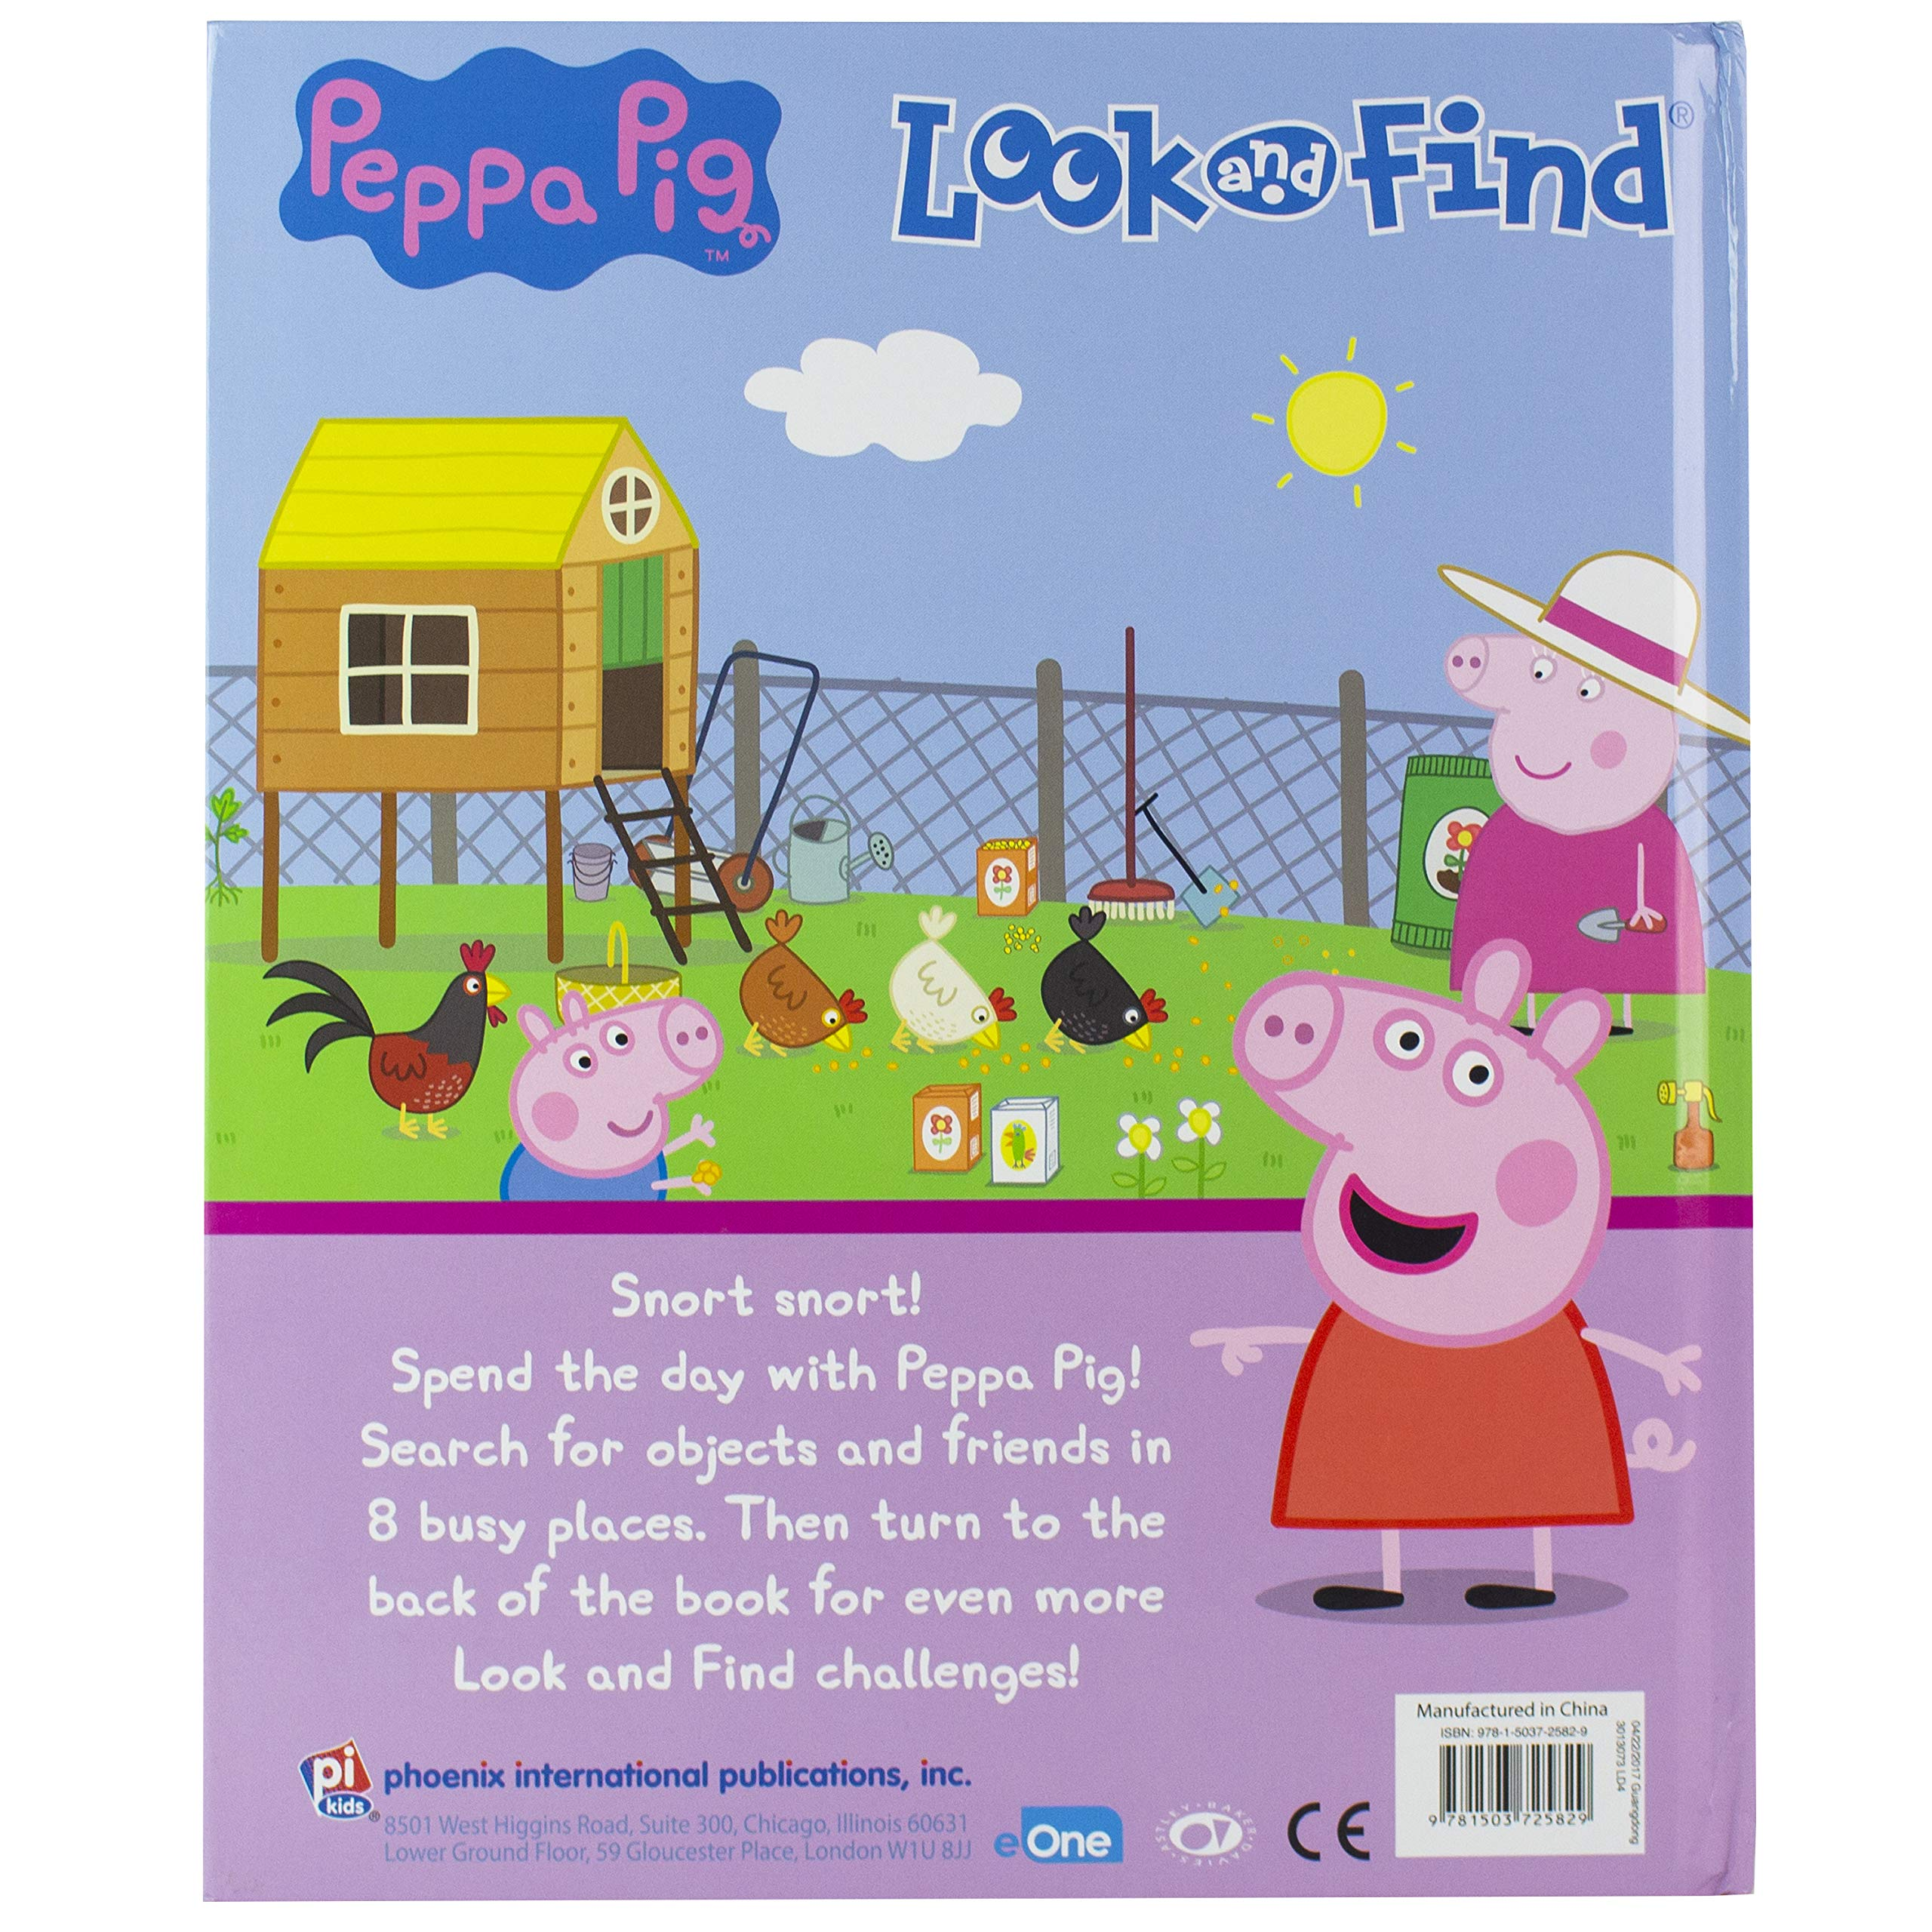 That Pig Ate My Pocket Money!: A Childrens Rhyming Animal Story (That Pig! Book 1)